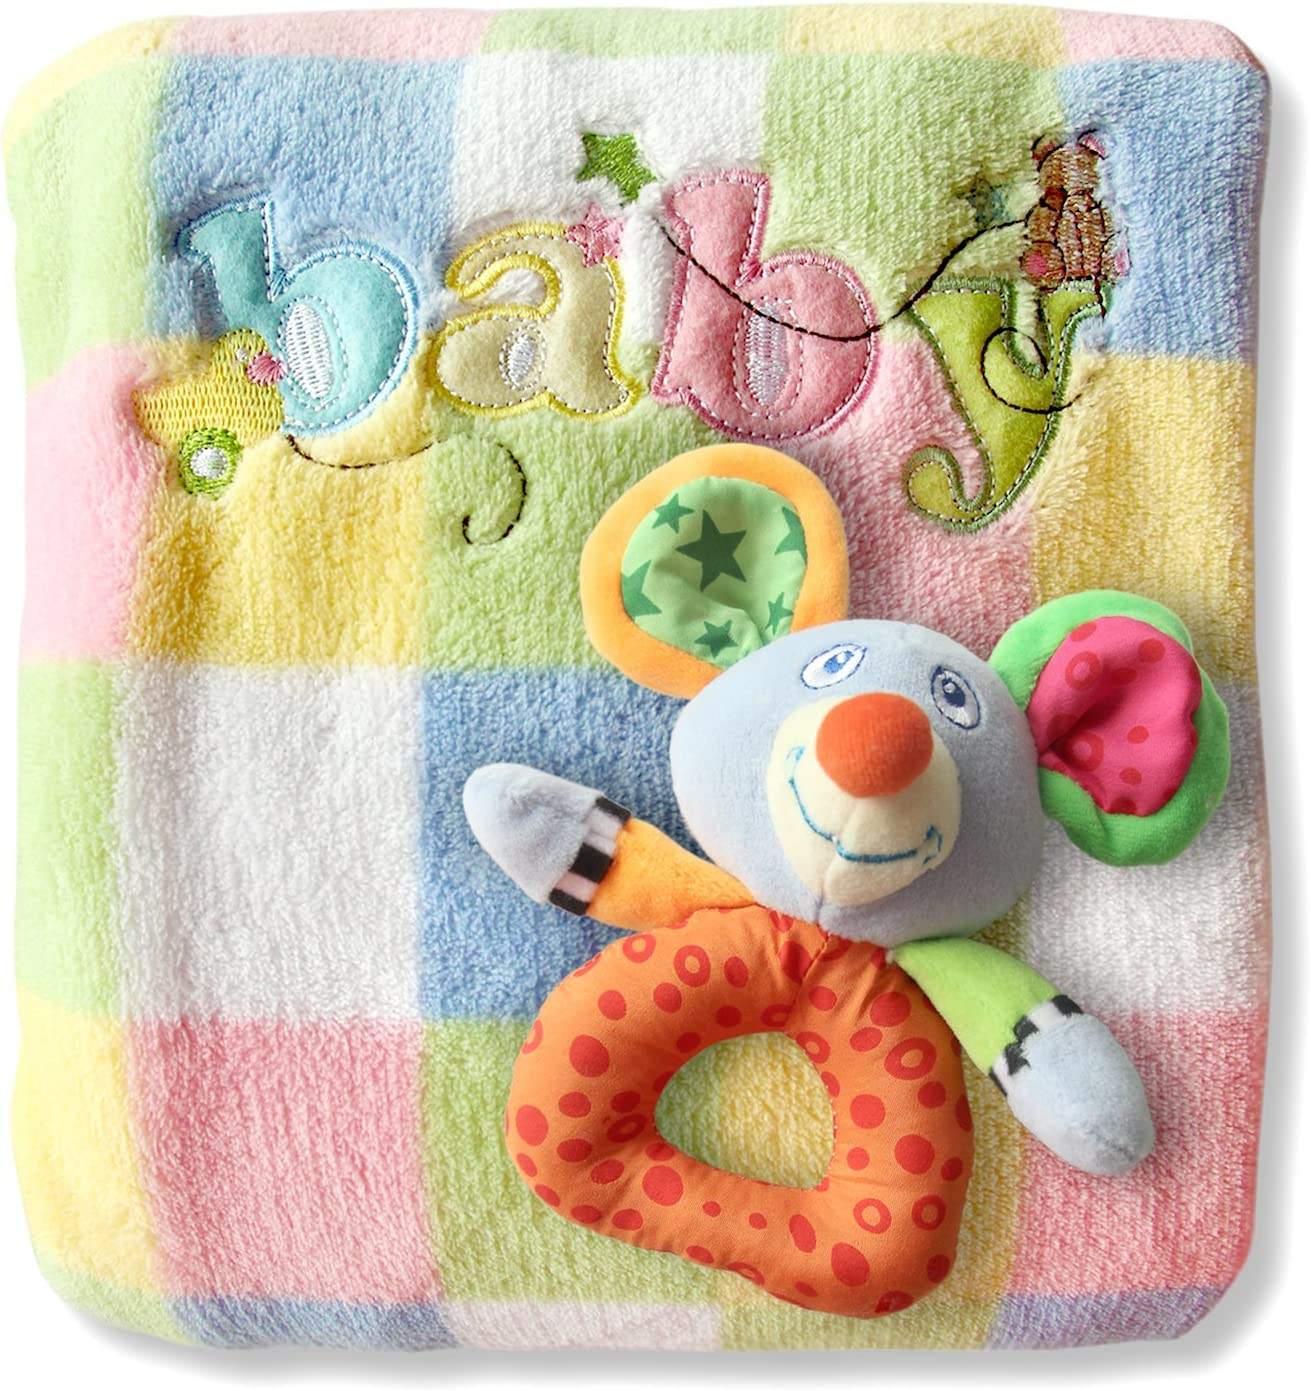 Baby Blanket & Rattle Gift Set for Boys or Girls, Ultra-Soft Fleece 30 x 40 by BubbyBabiesTM